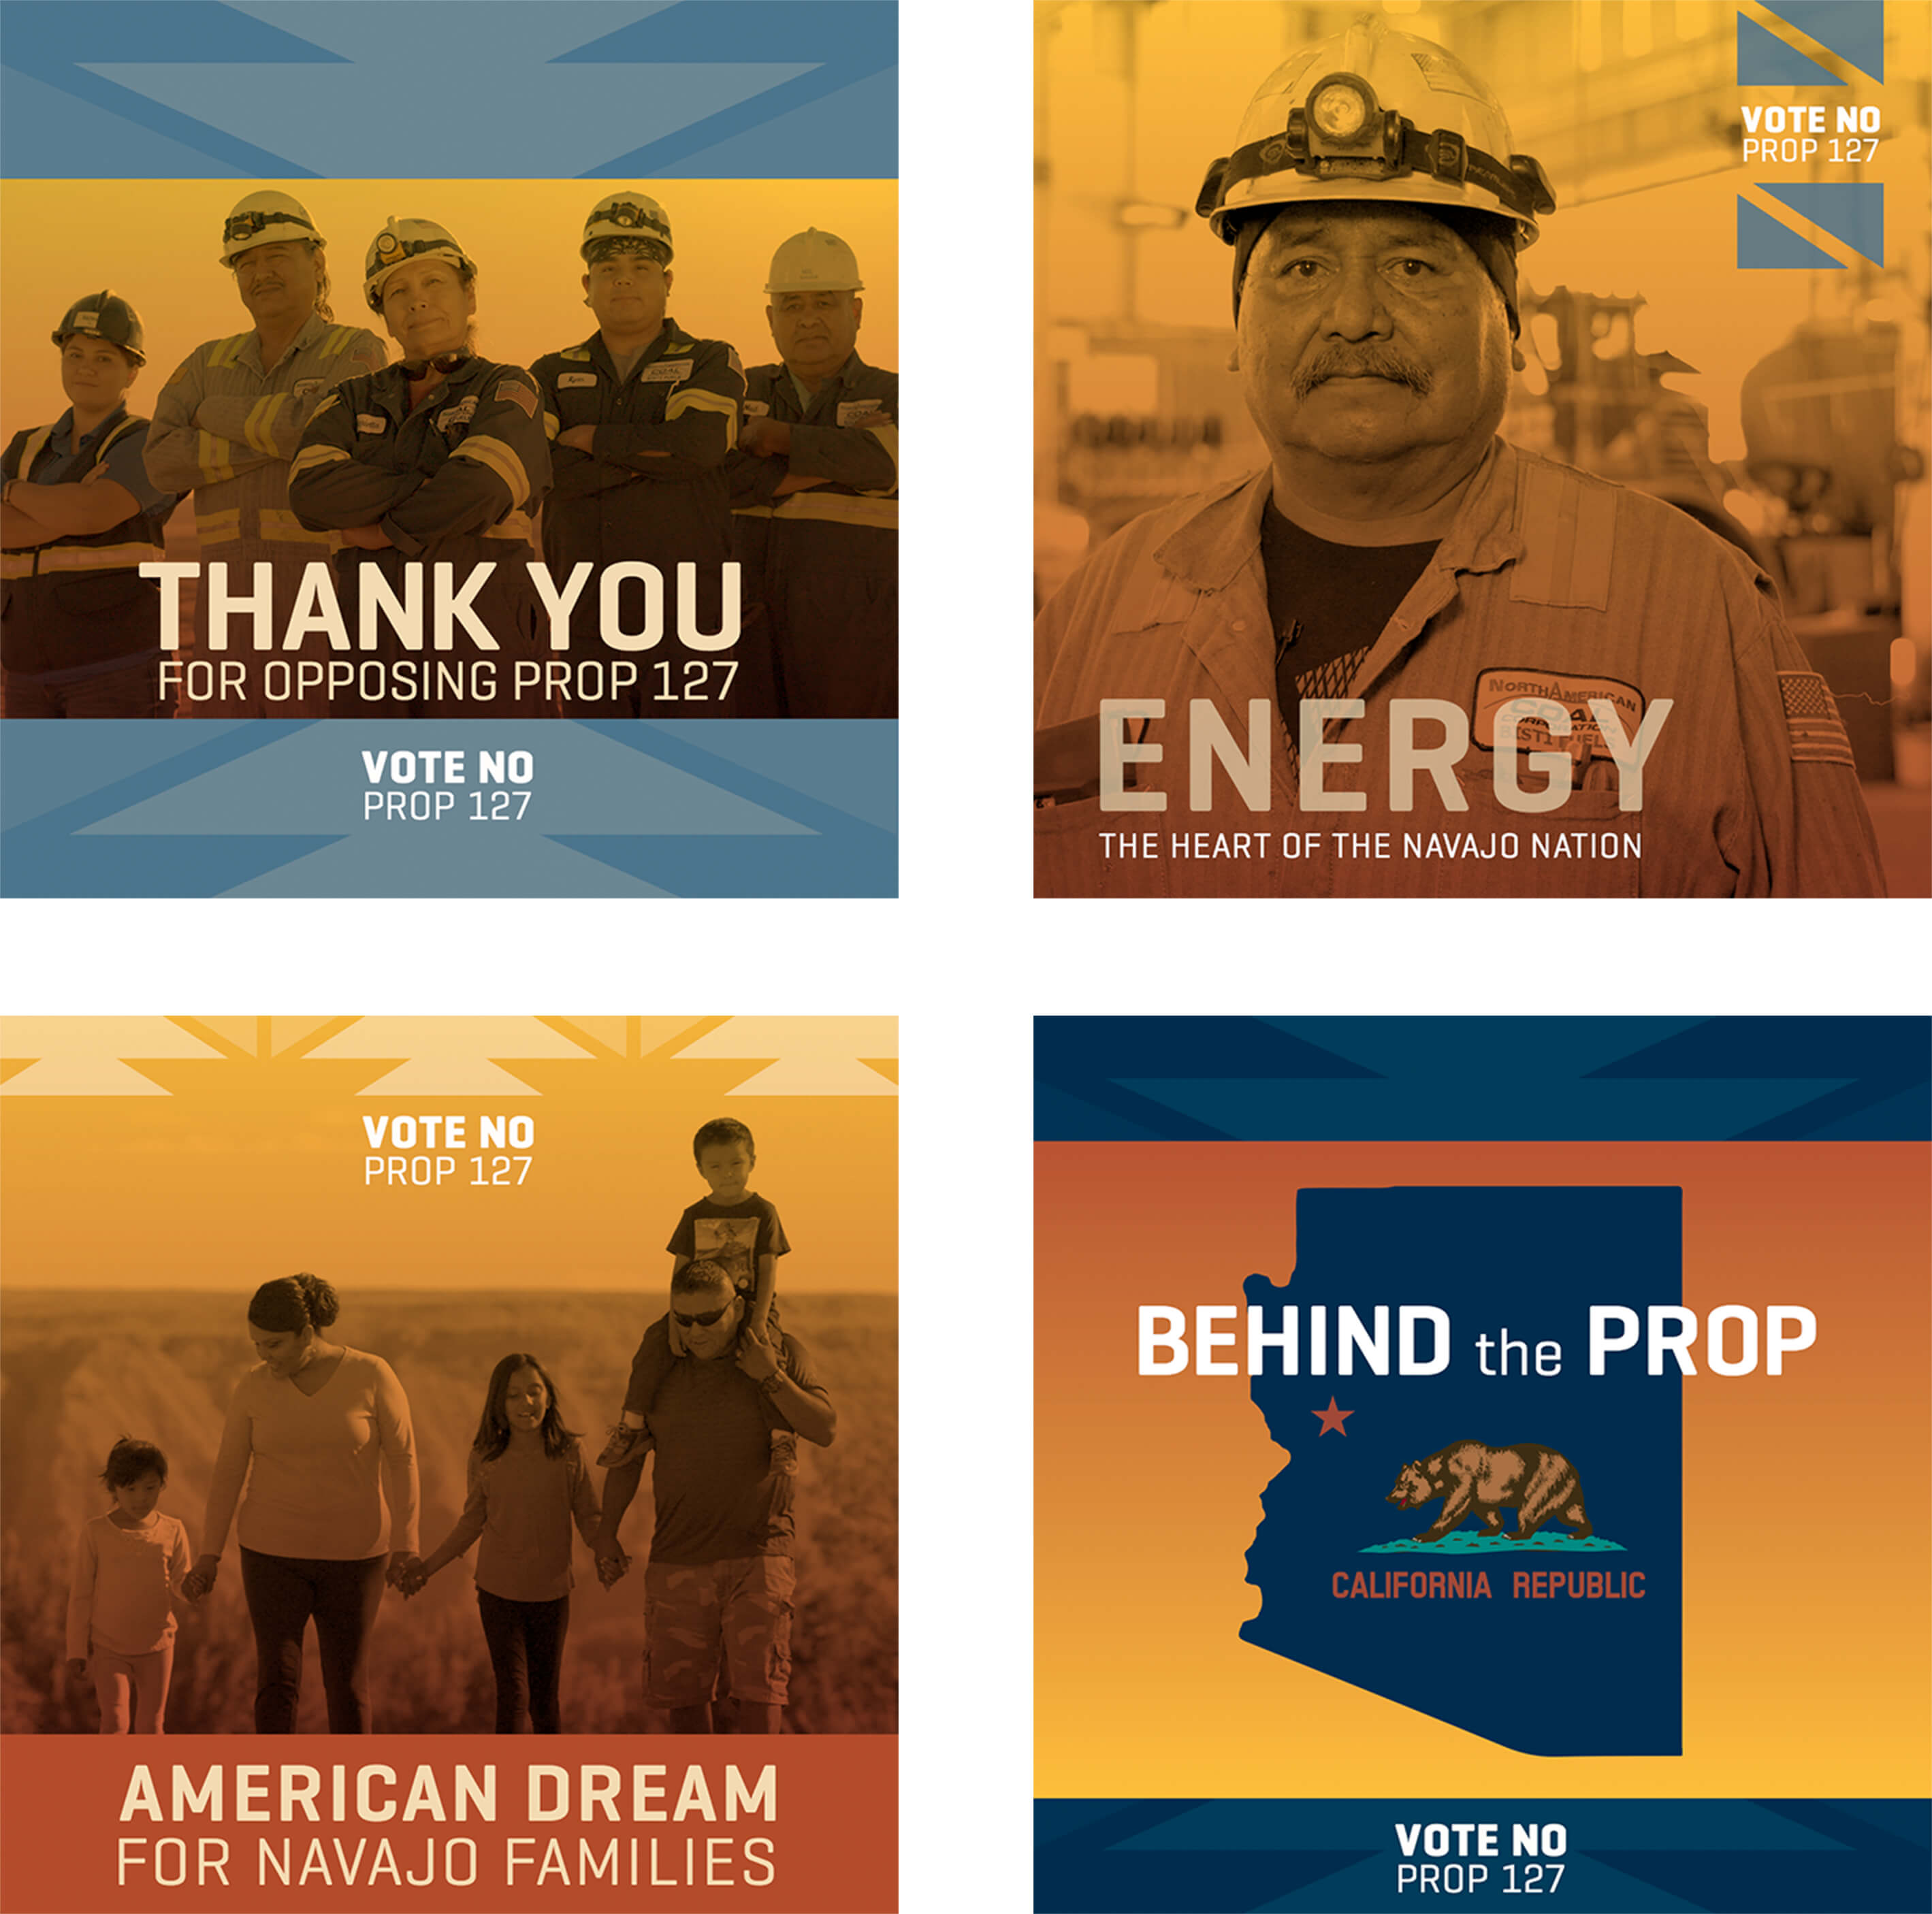 Navajo Transitional Energy Thank You cards and posters design